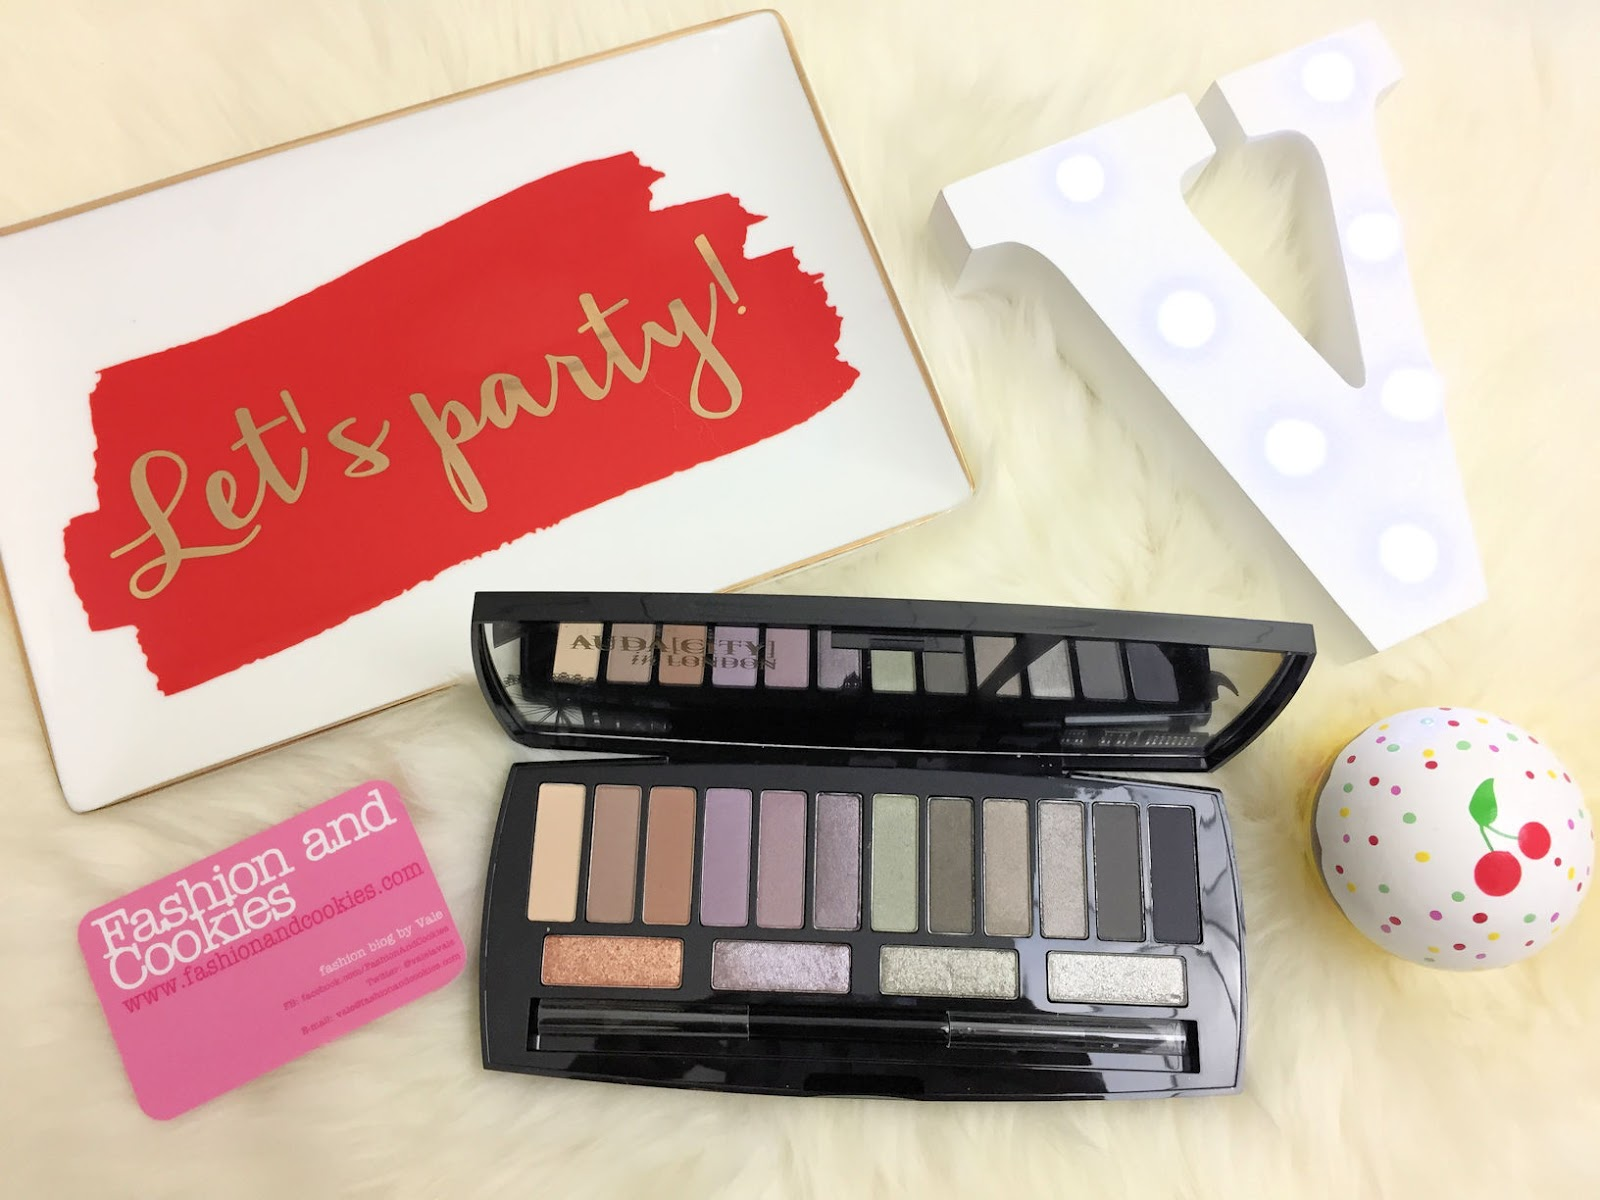 Lancôme Audacity in London eyeshadow palette on Fashion and Cookies beauty blog, beauty blogger